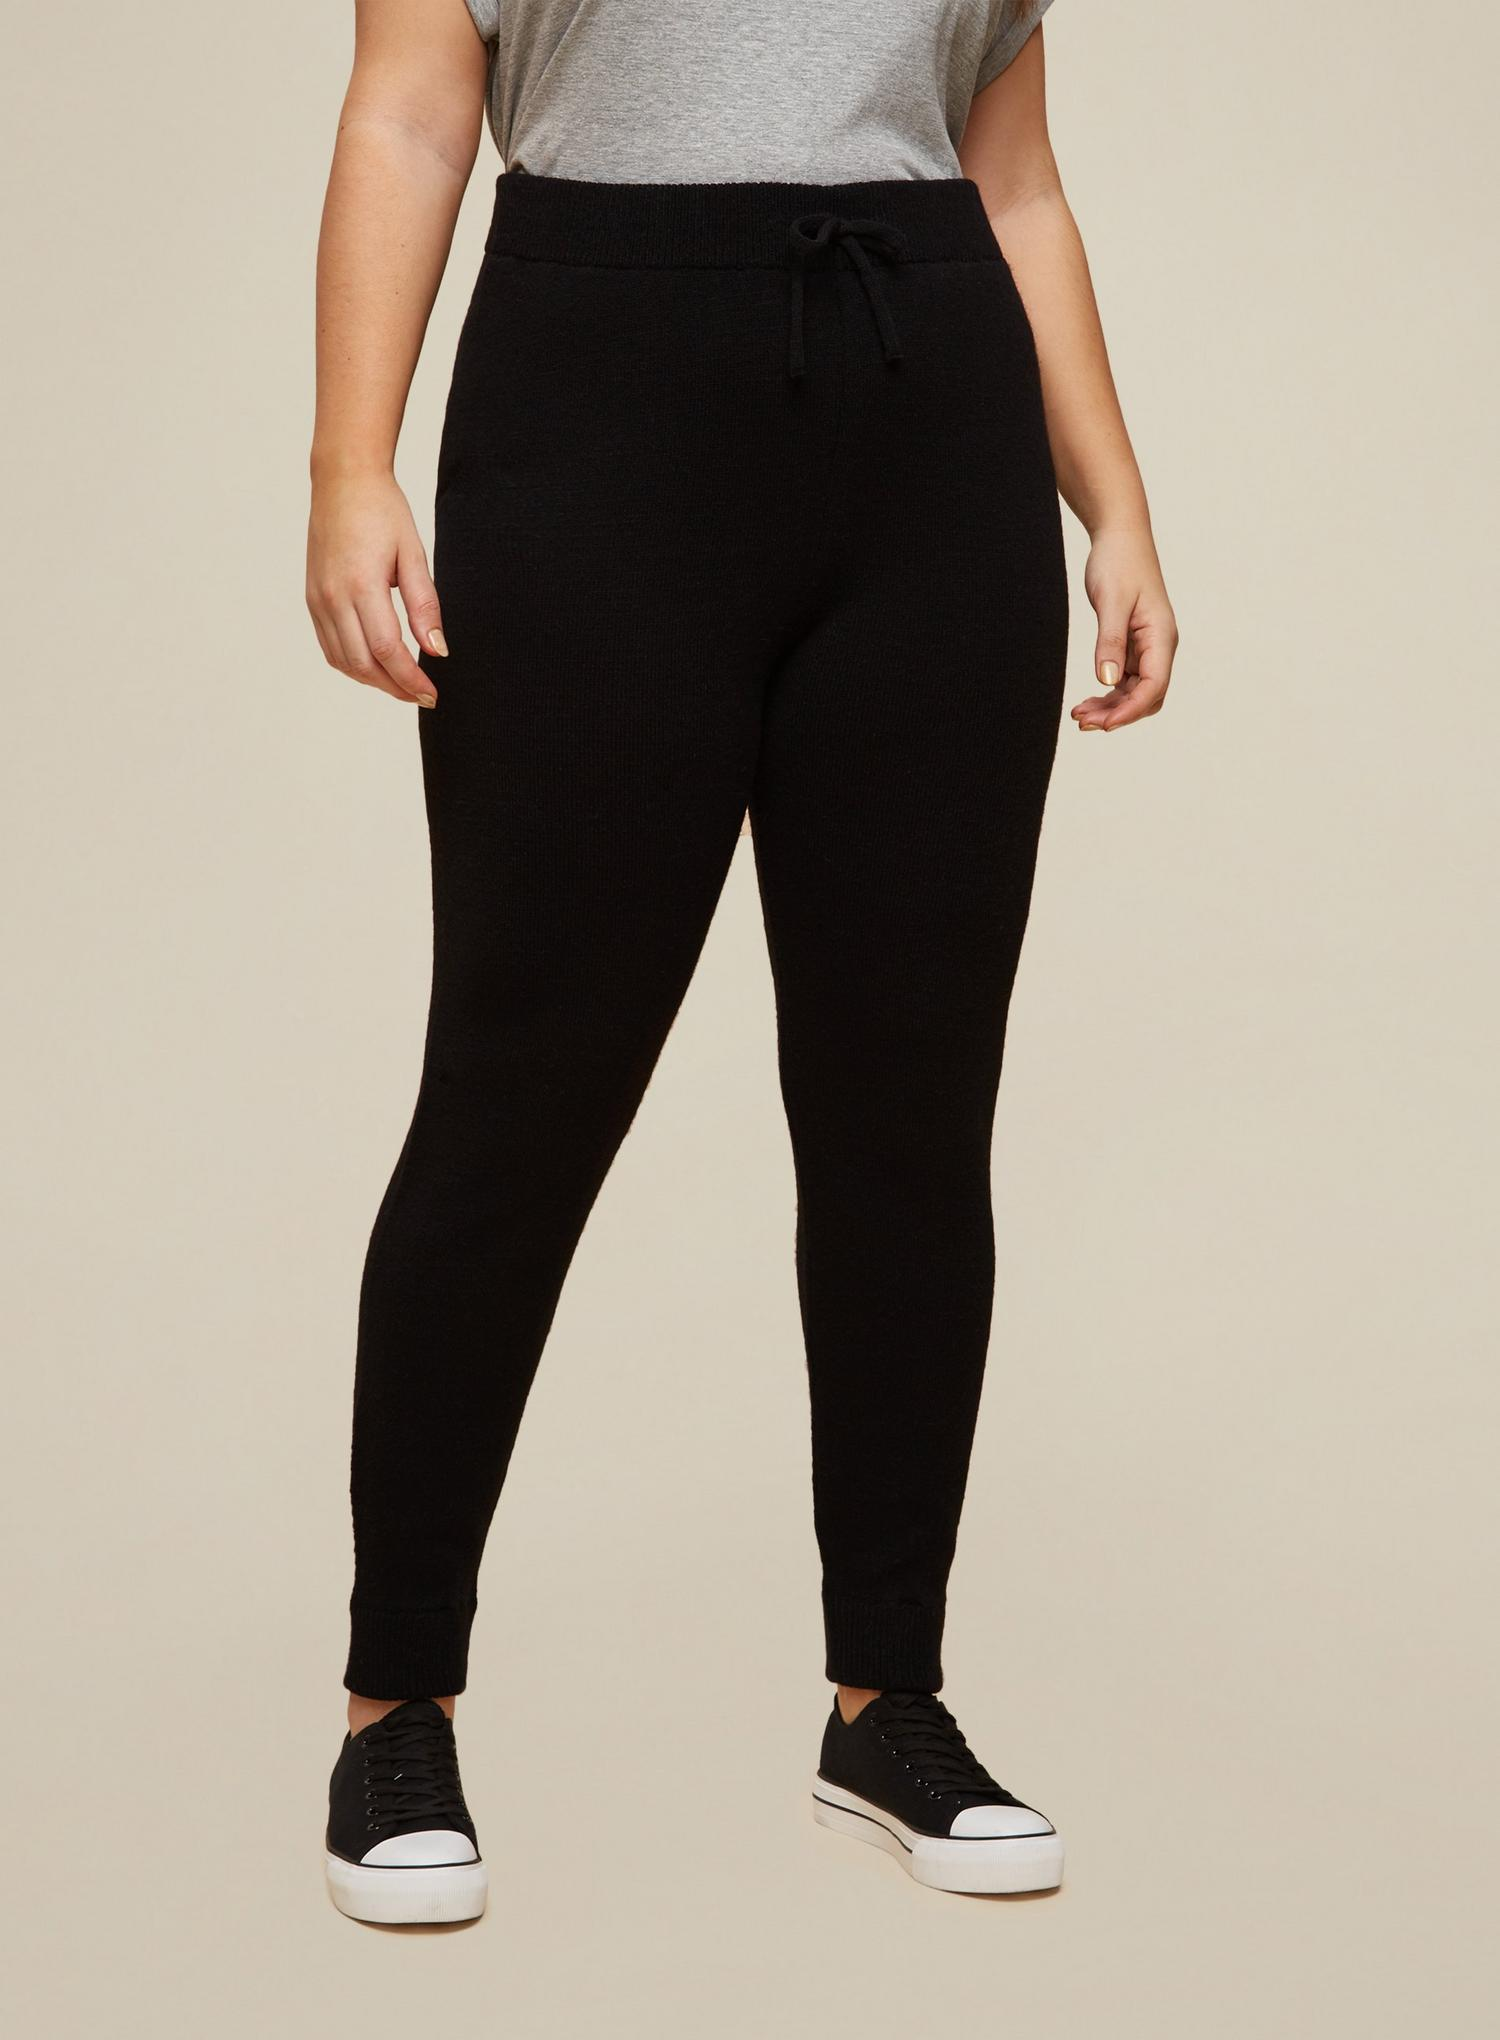 105 Curve Black Lounge Knitted Joggers image number 1